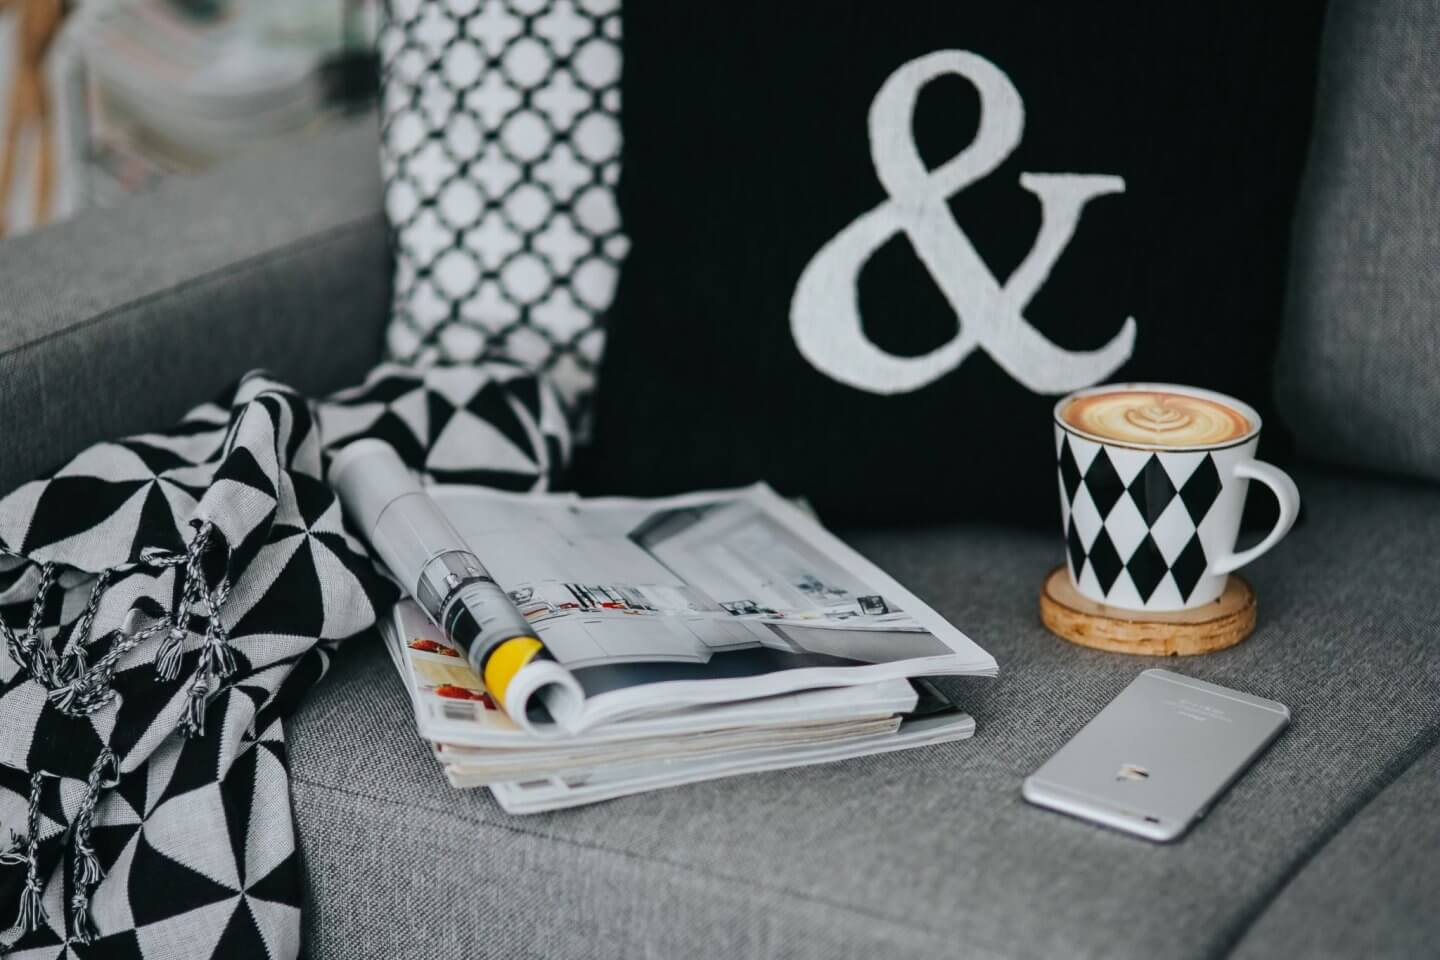 5 Things to Remember when Decorating on a Budget